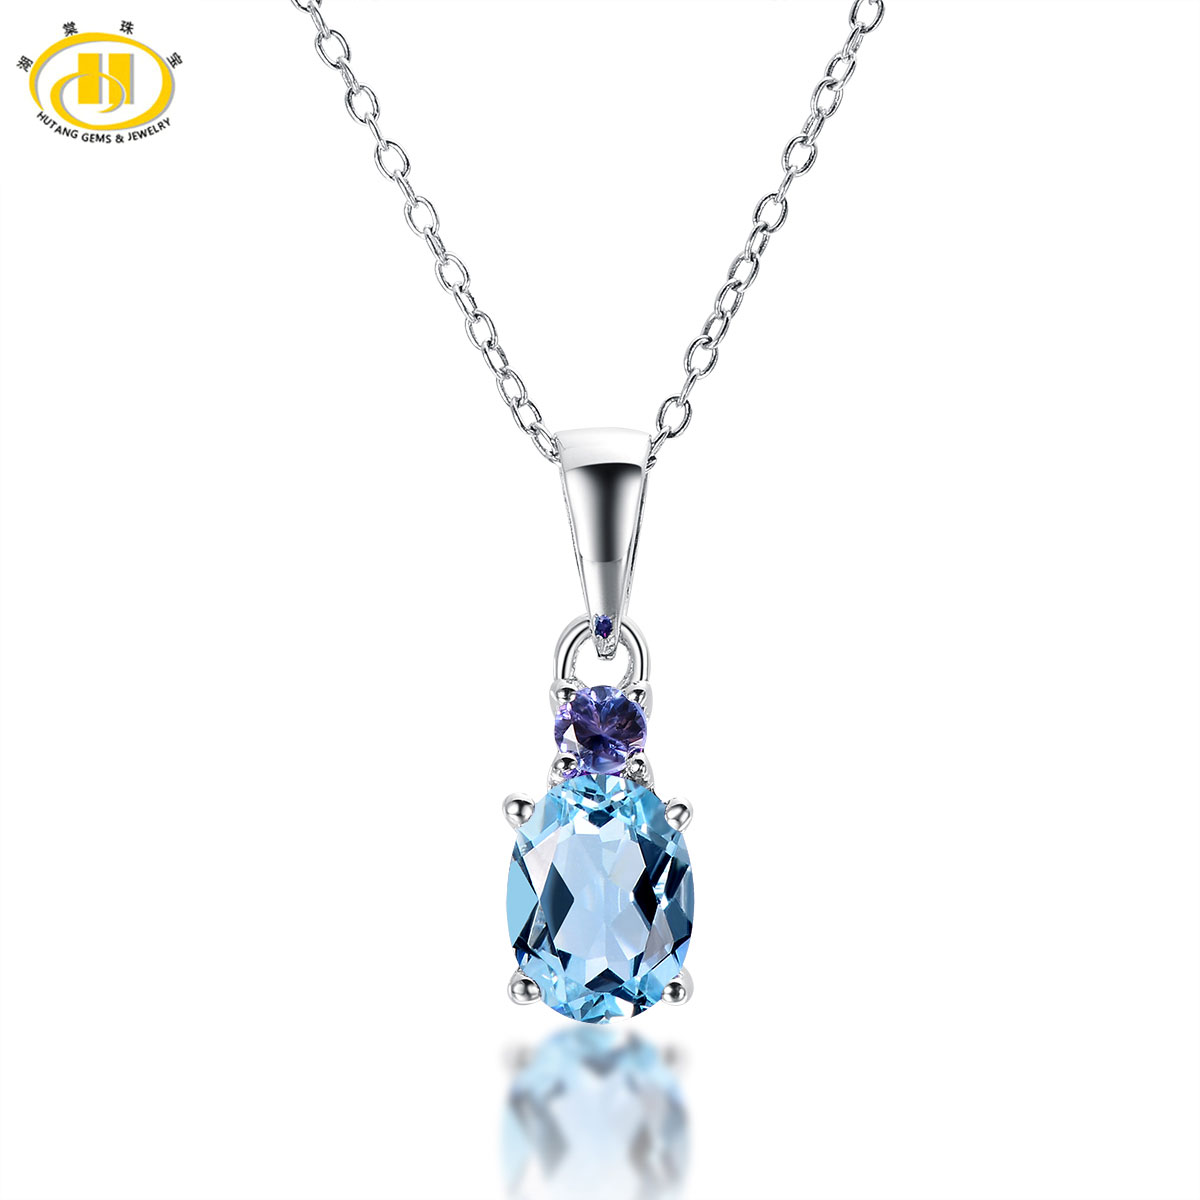 Hutang Classic Natural Blue Topaz & Tanzanite Solid 925 Sterling Silver Pendant Necklace Gemstone Fine Jewelry For Women's Gift